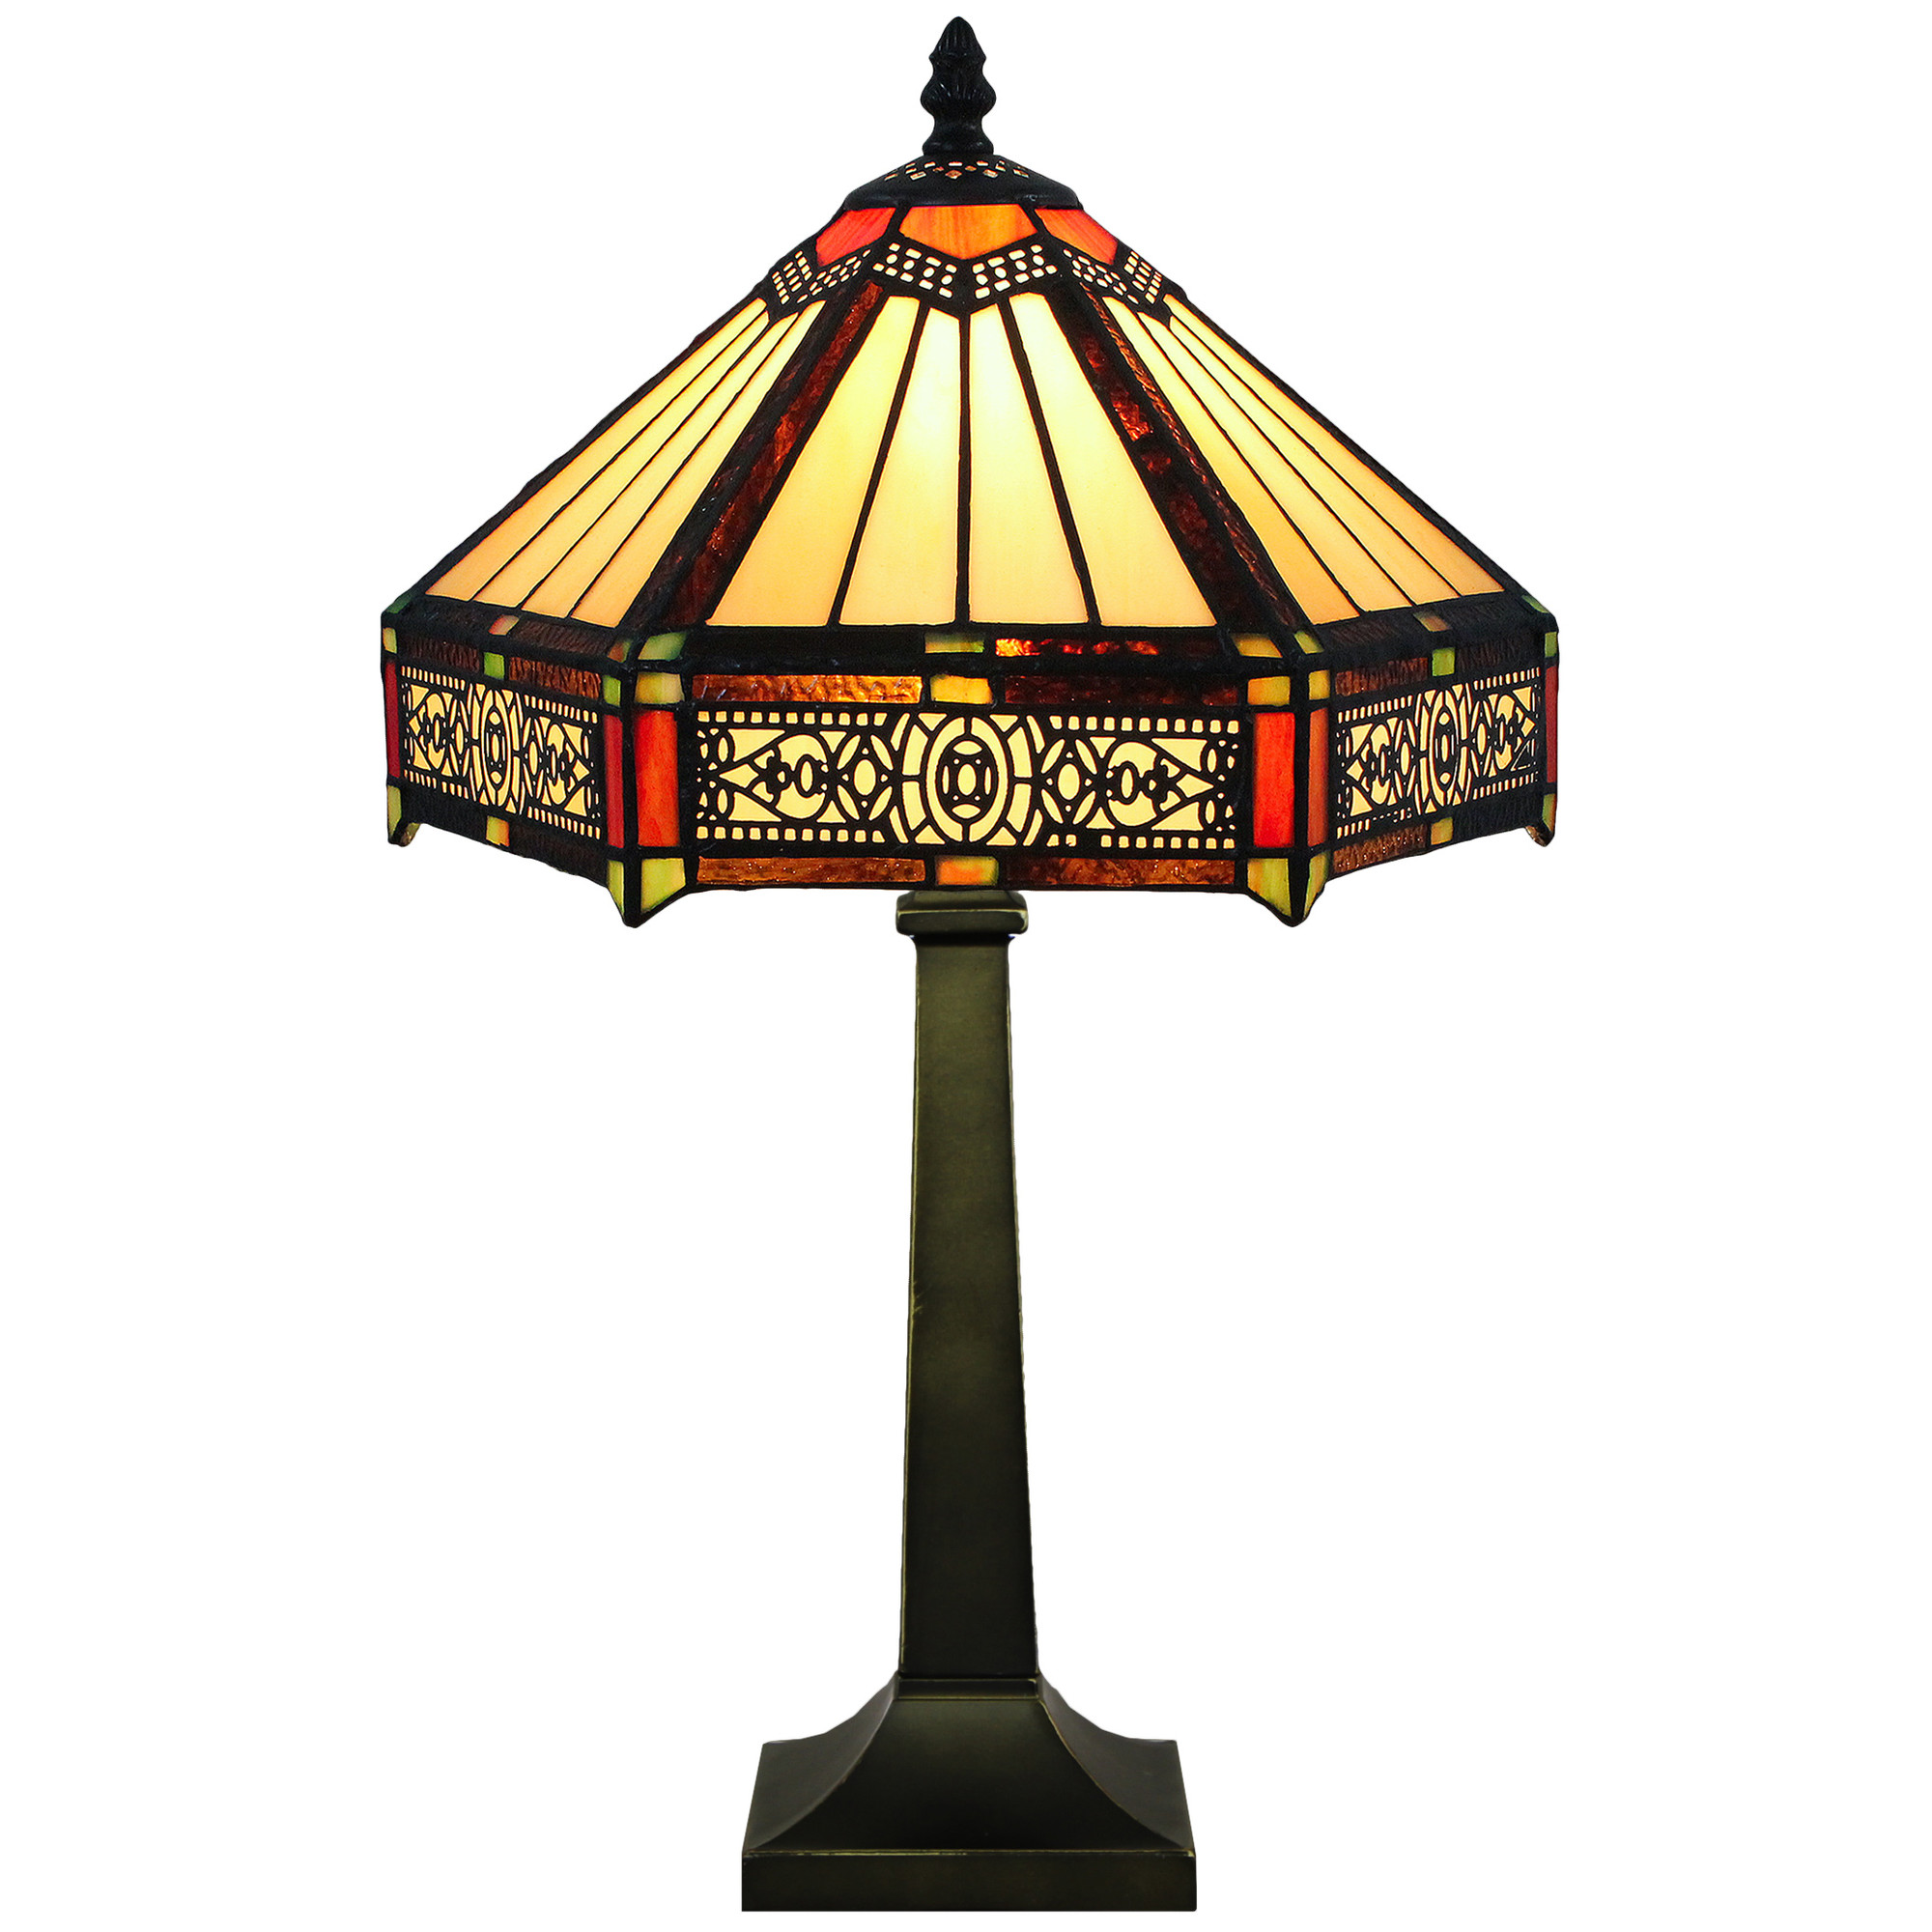 Six sided style stained glass table lamp temple webster sku forh1150 six sided style stained glass table lamp is also sometimes listed under the following manufacturer numbers jtdy12t22 aloadofball